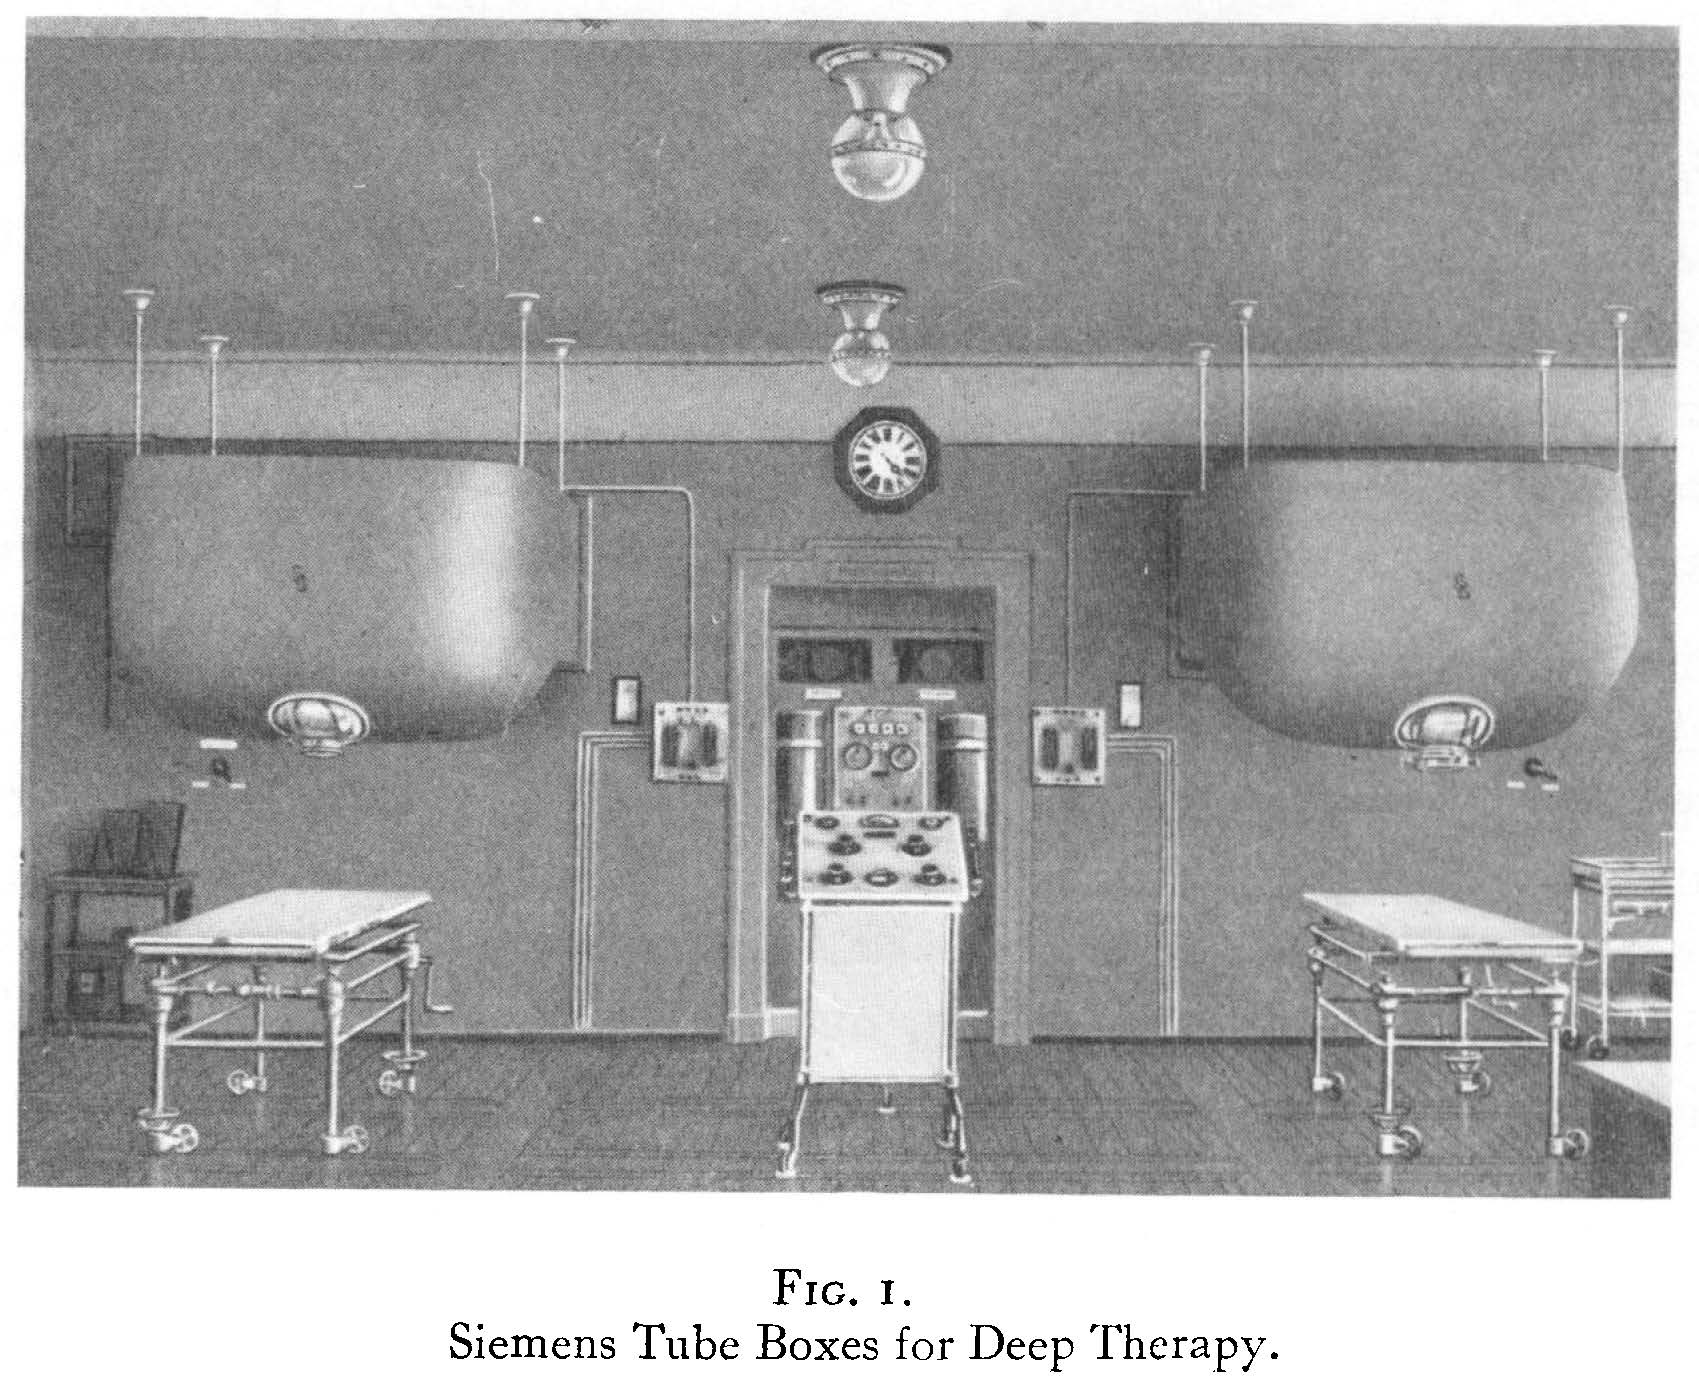 Siemans tube boxes for deep therapy